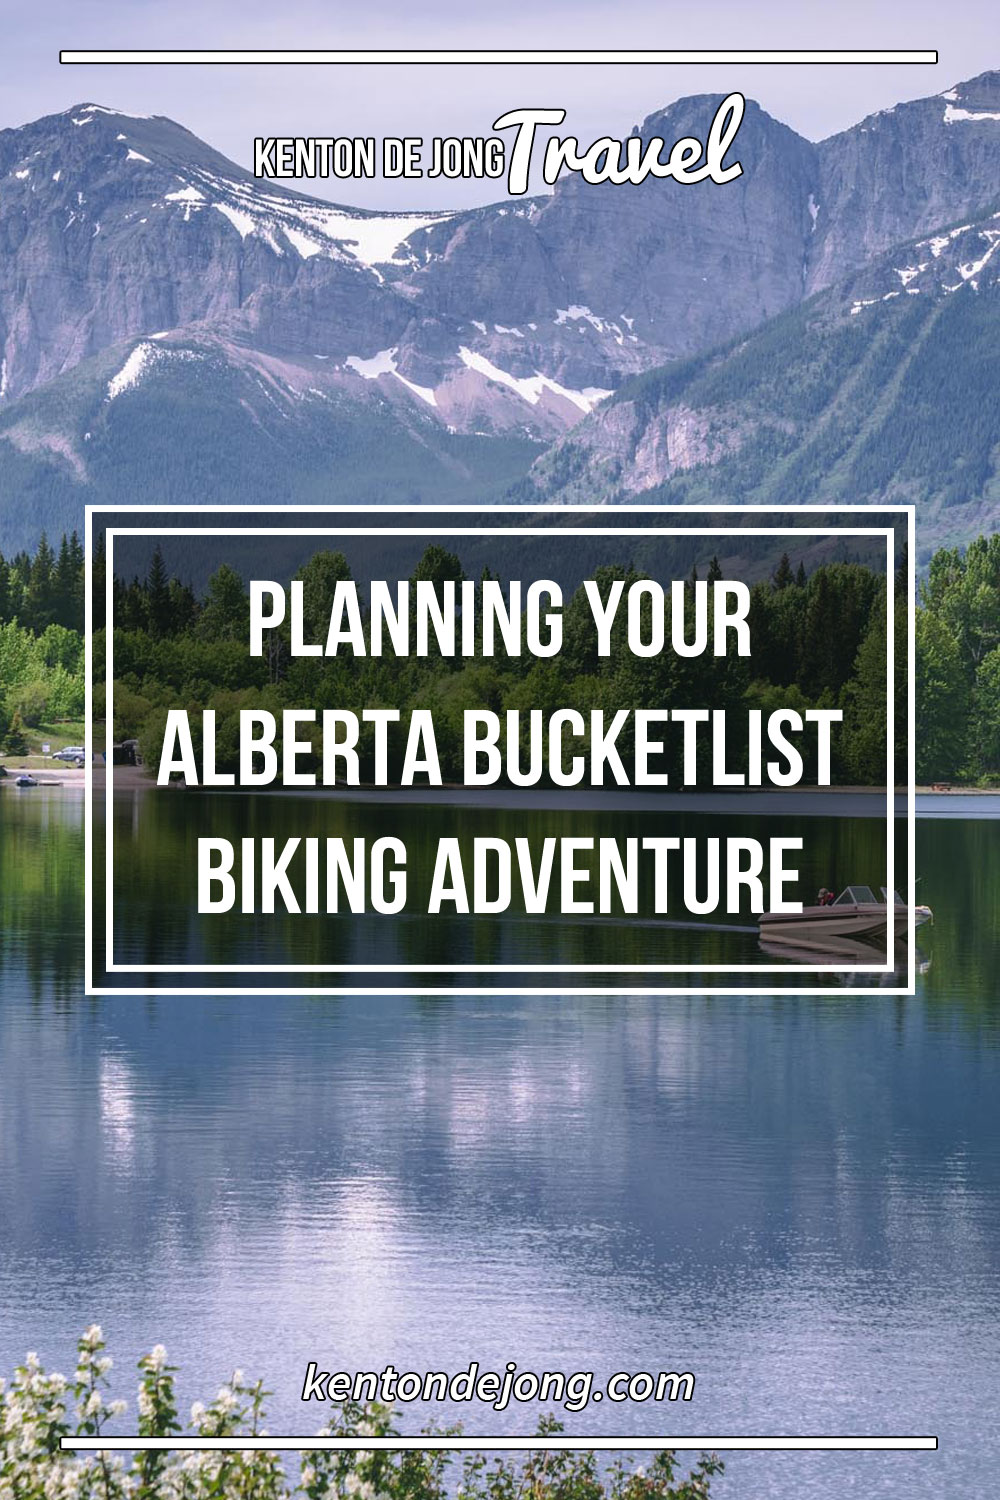 Planning Your Alberta Bucketlist Biking Adventure